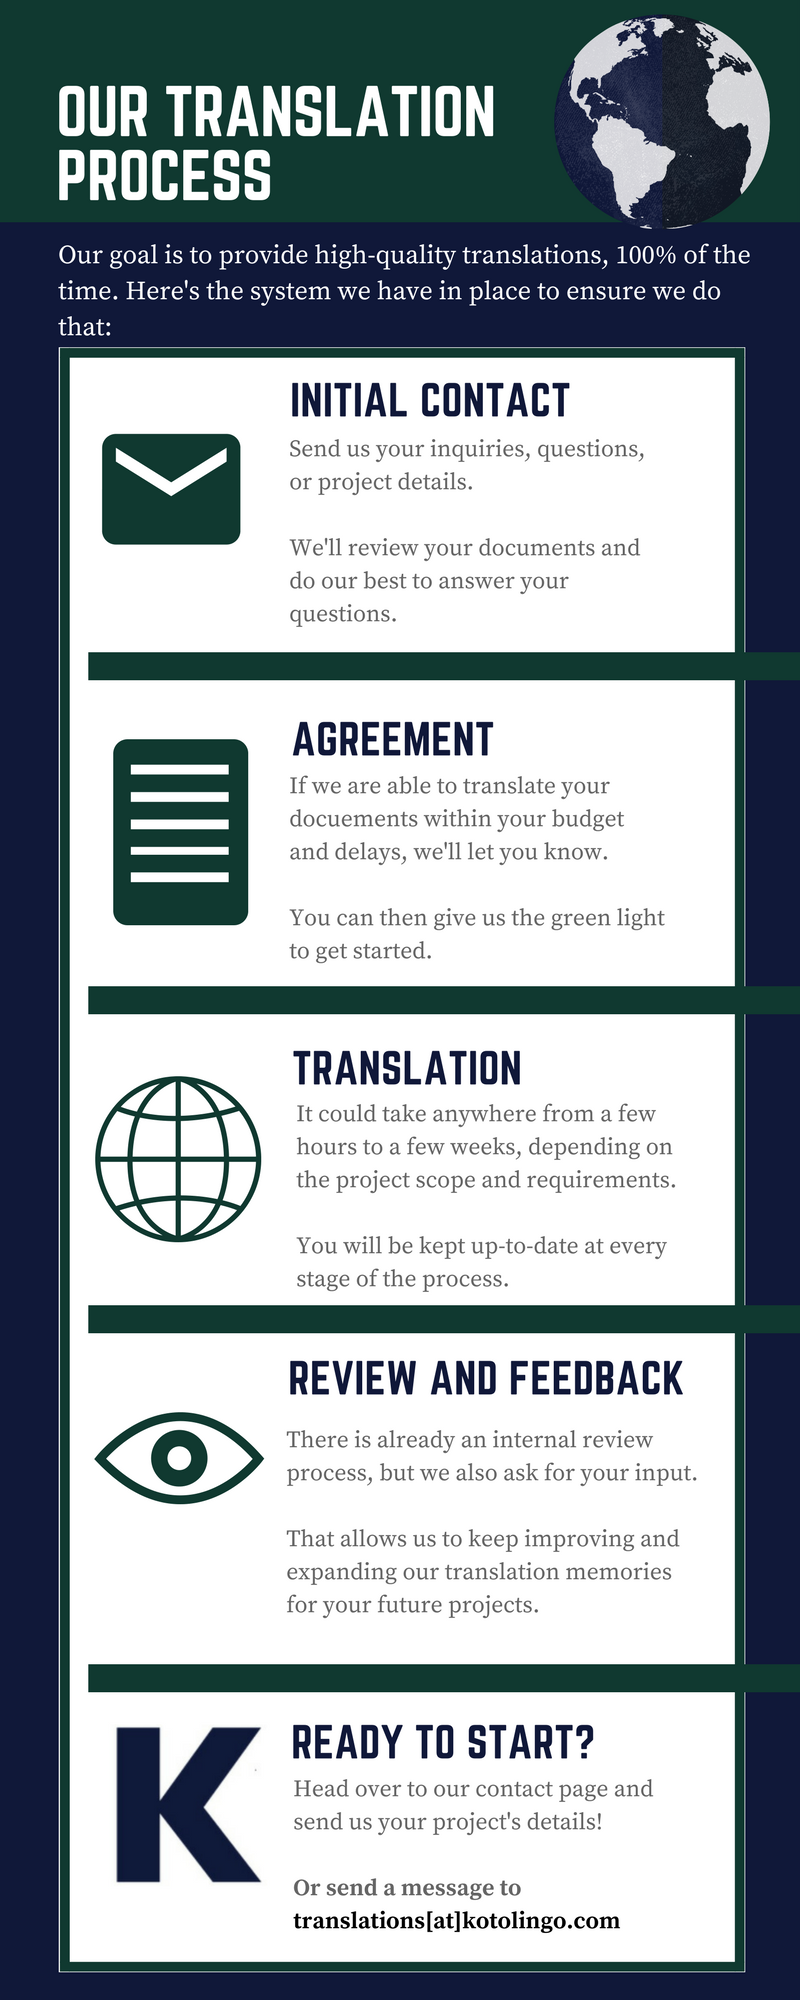 Infographics describing the translation process at Kotolingo. Initial contact (send your project details), agreement upon terms and schedule, translation and feedback with review of the translation.